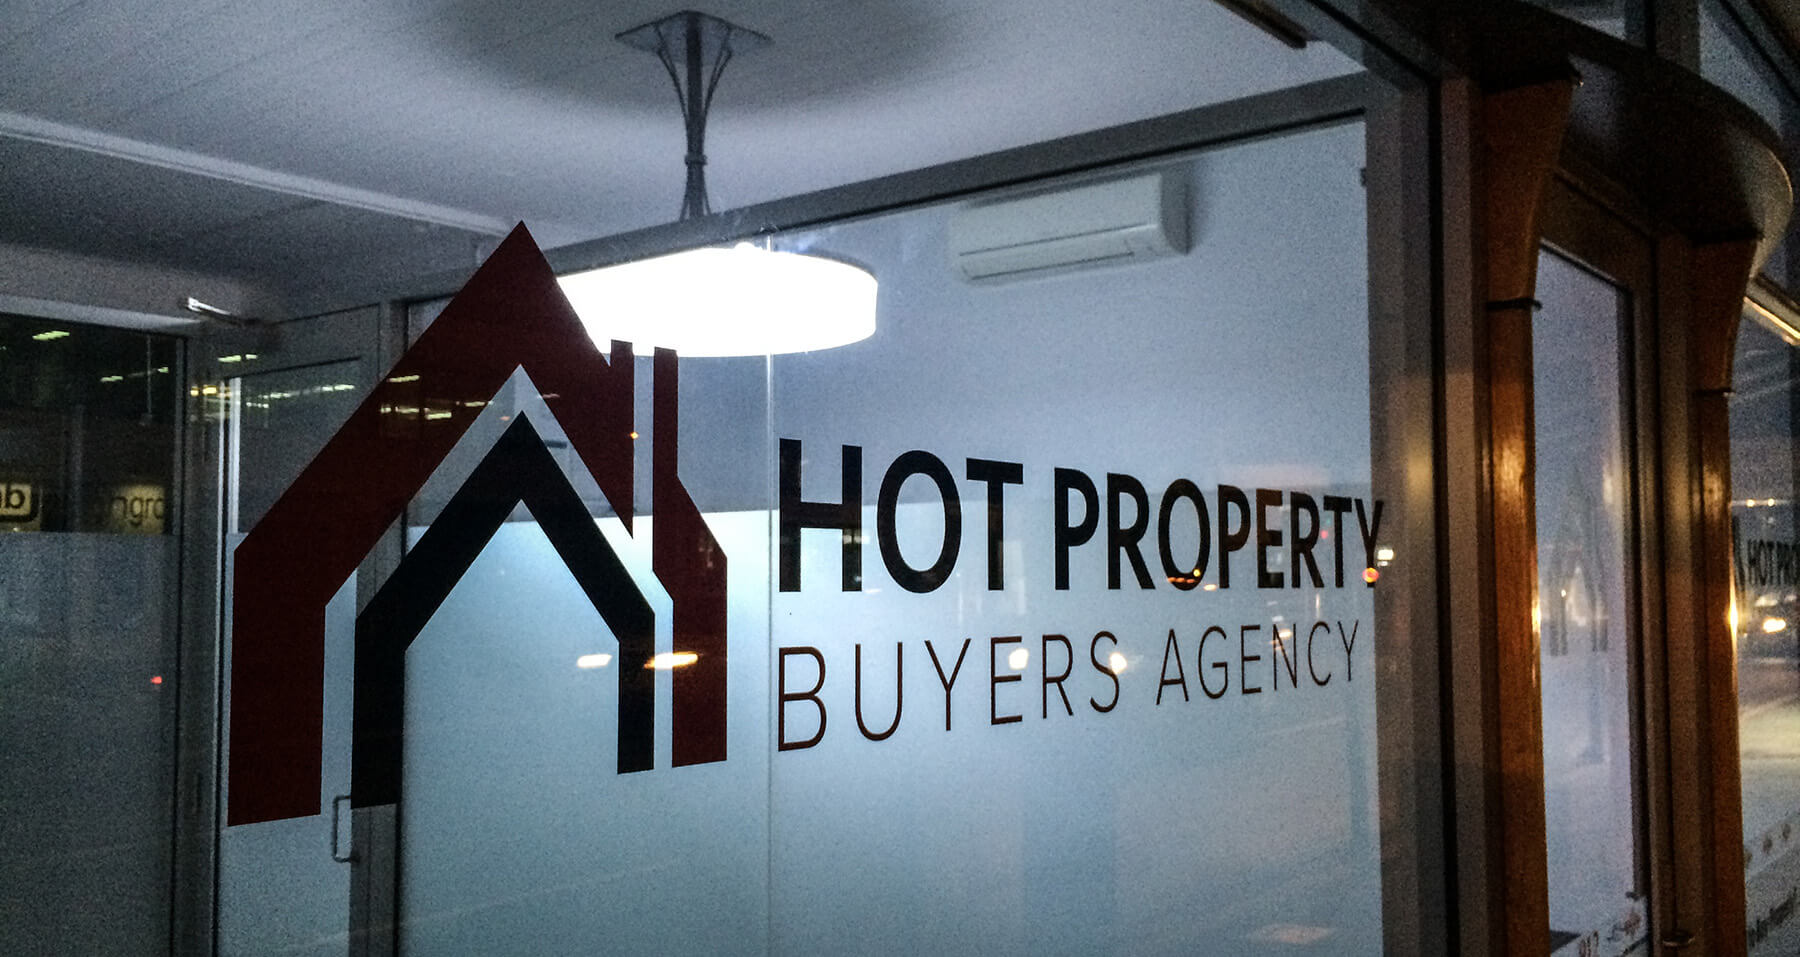 Hot Property Signage